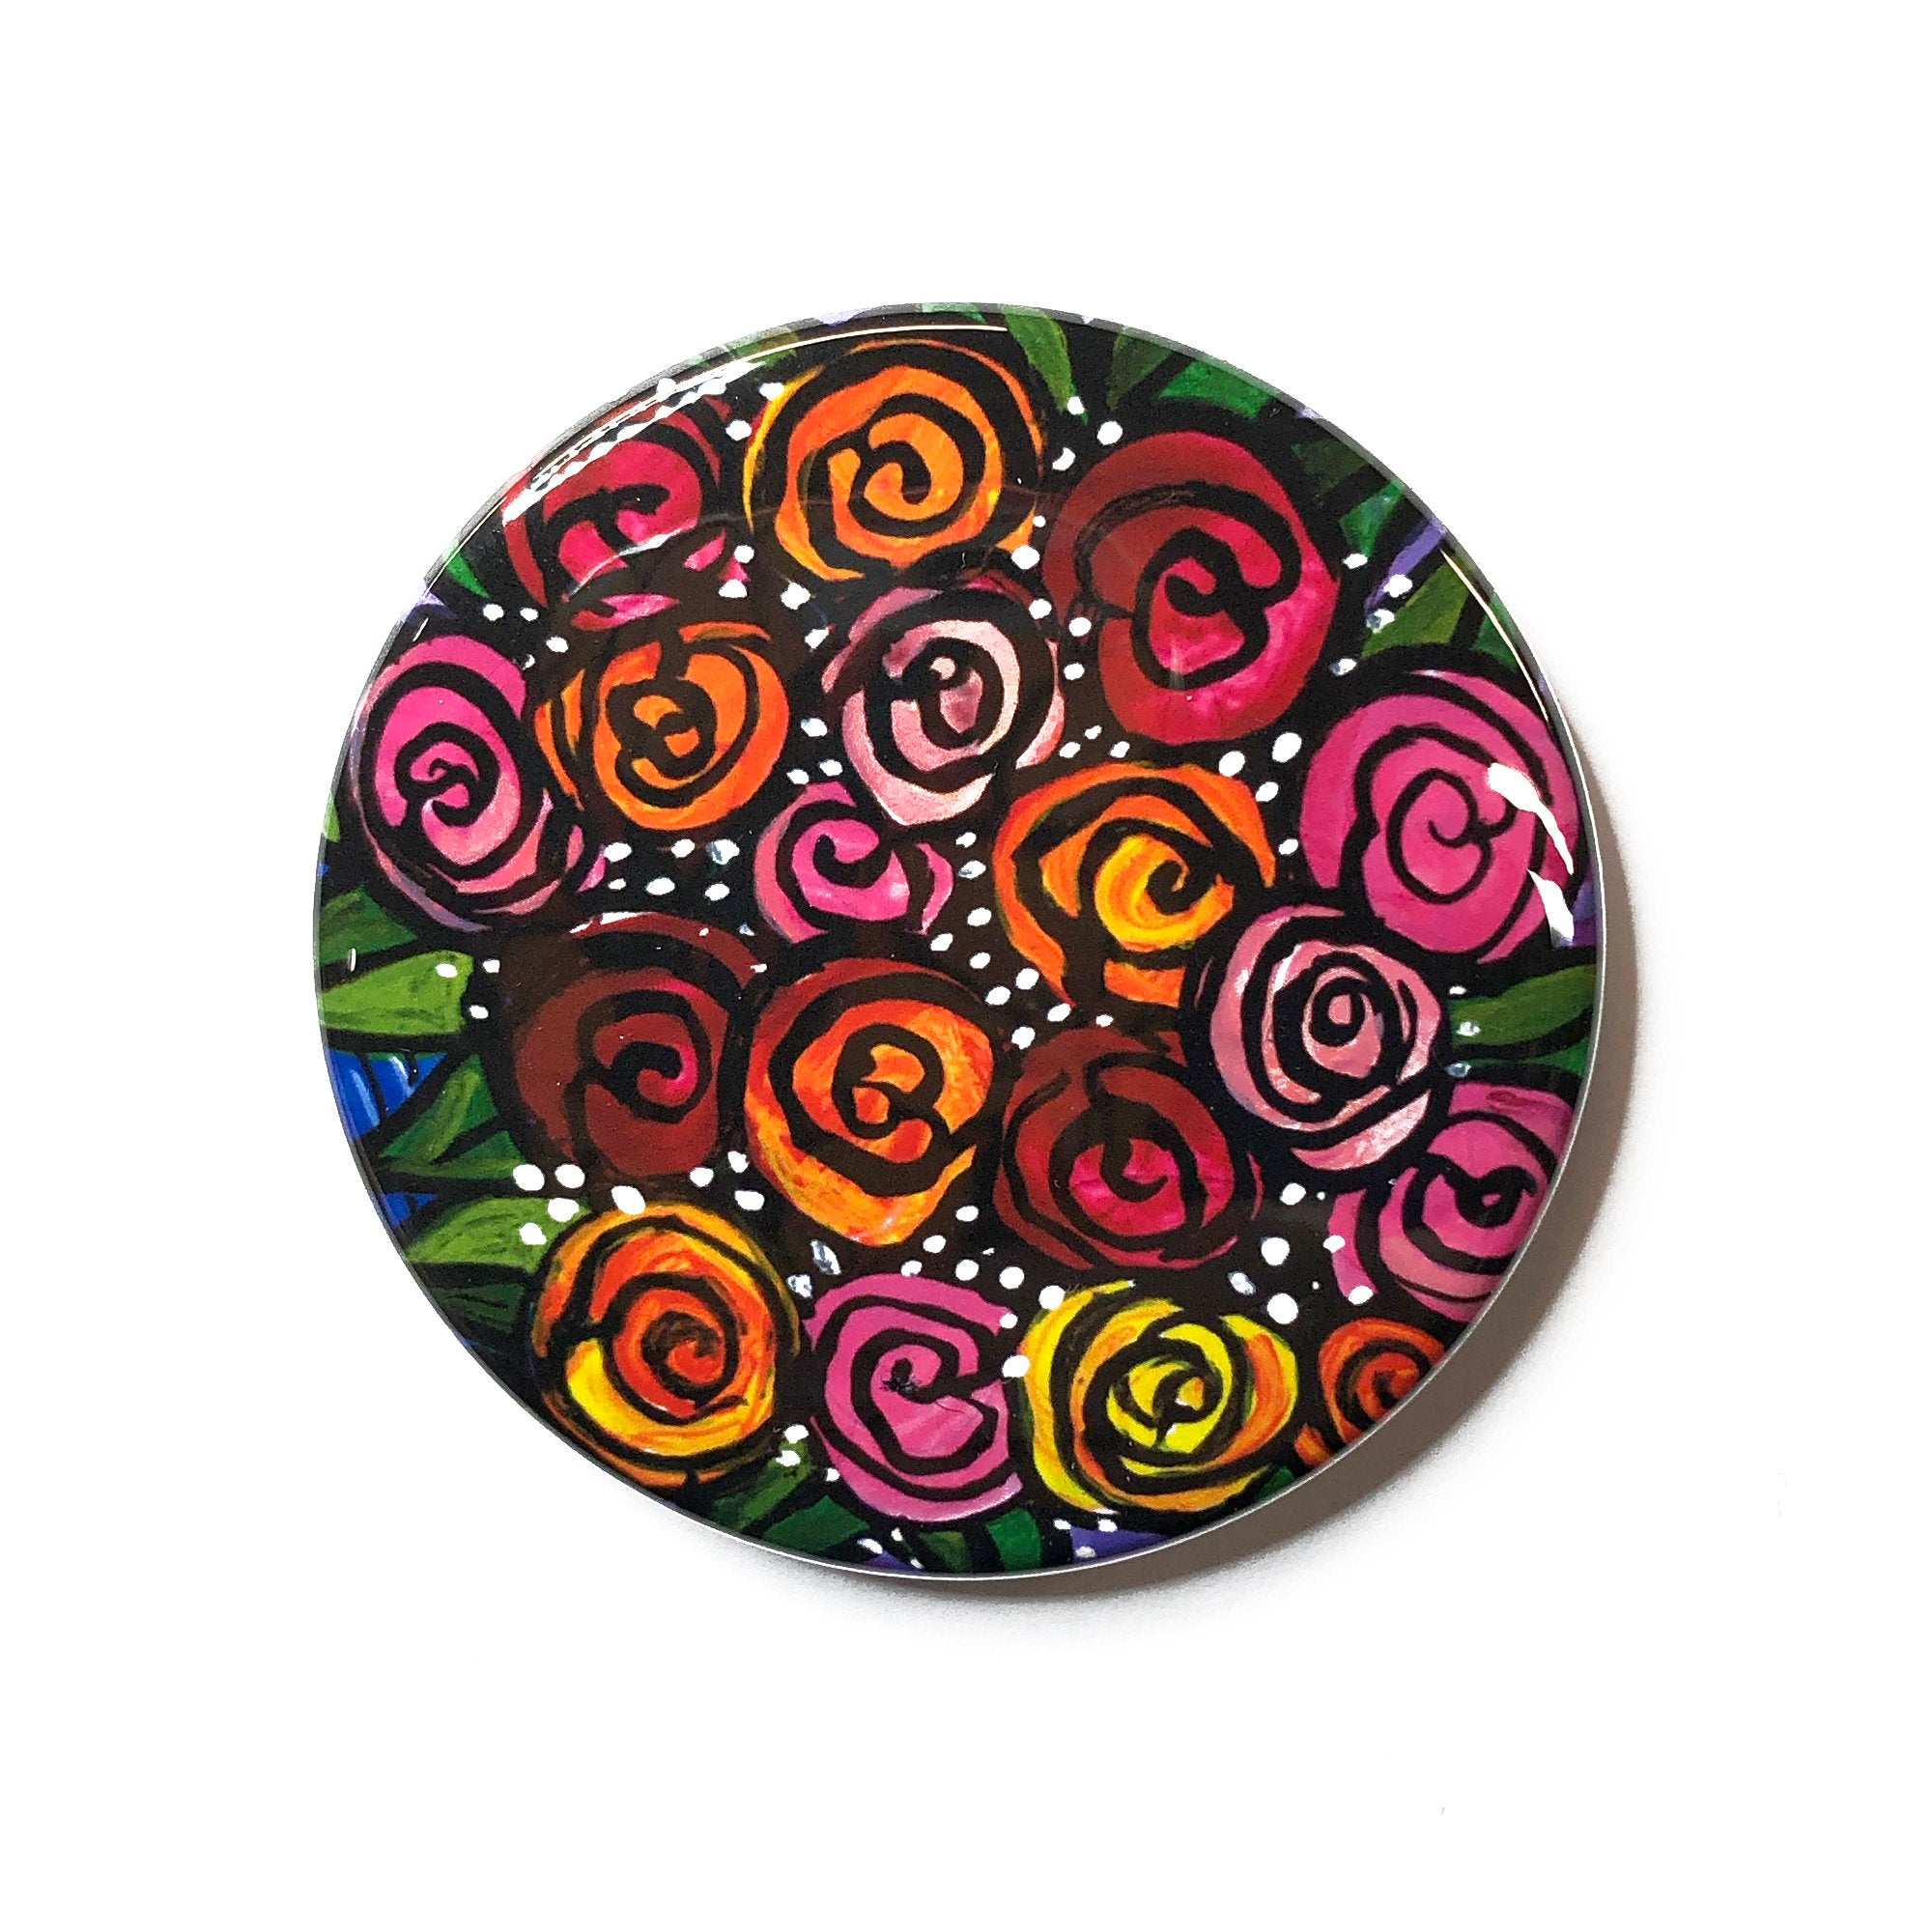 Colorful Roses Pocket Mirror, Fridge Magnet, or Pin Back Button - Small Gift or Party Favor